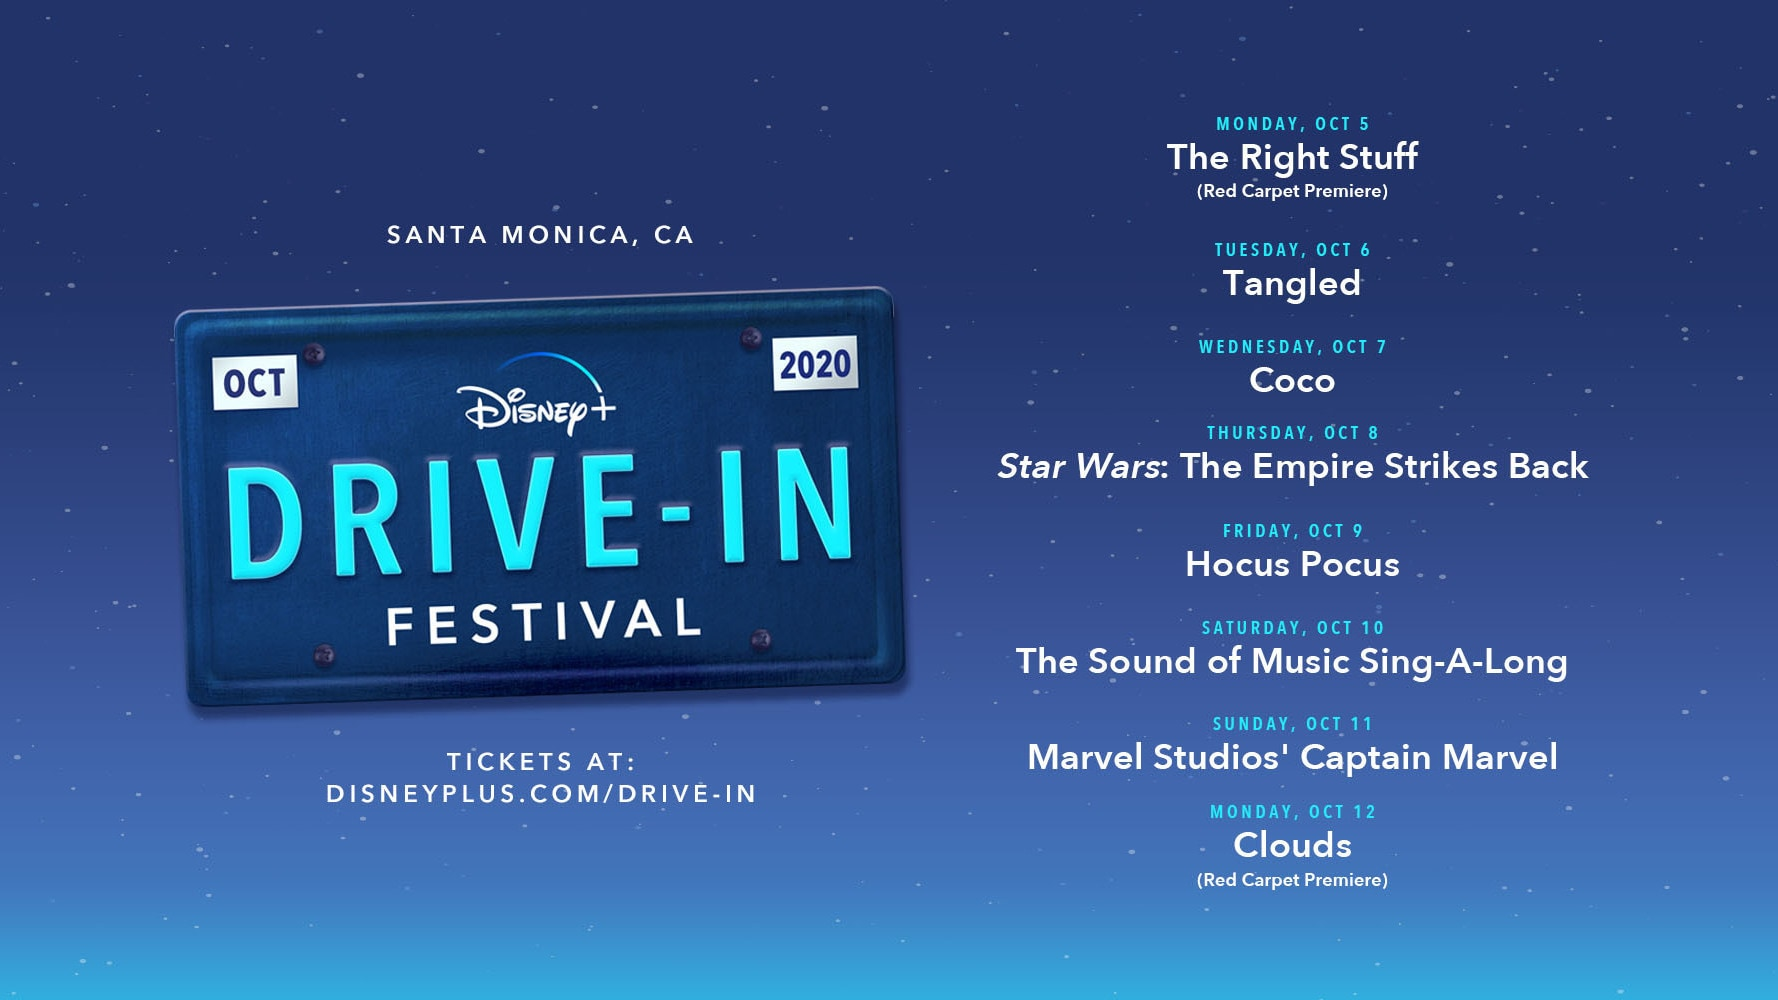 Rev Your Engines: The Disney+ Drive-in Festival Pulls Into Santa Monica October 5-12, 2020